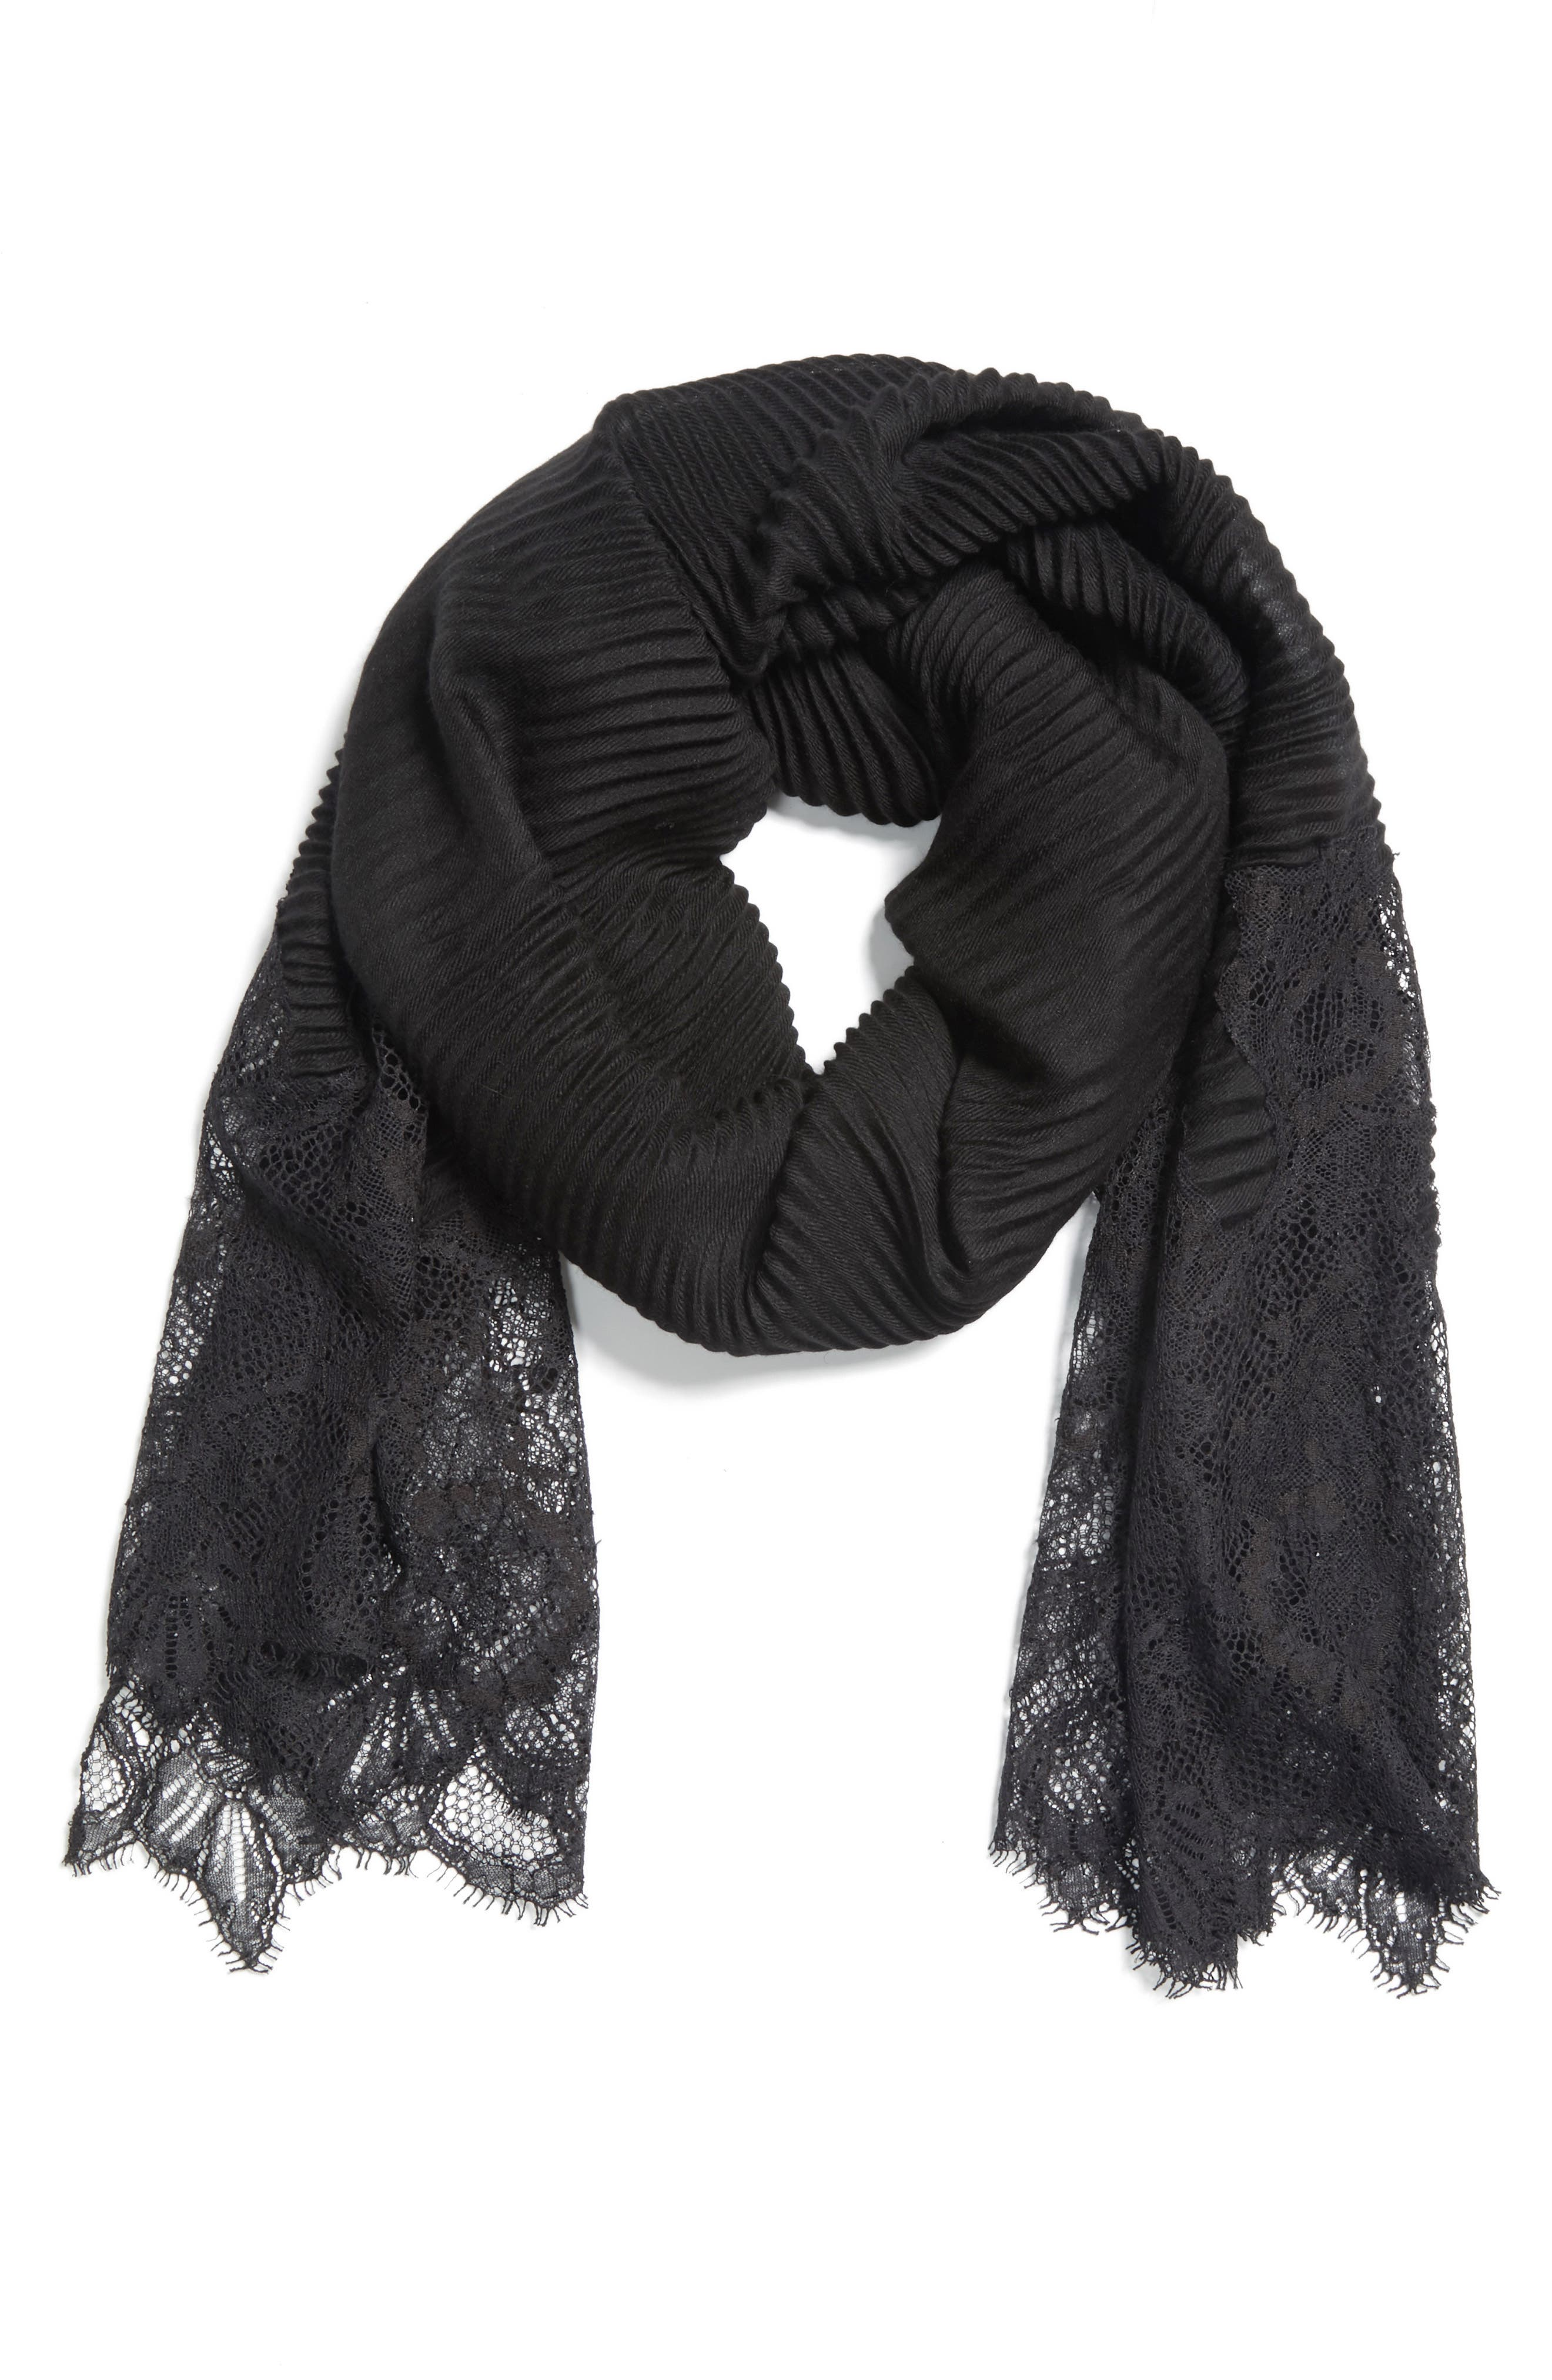 VALENTINO,                             Plissé Lace Trim Scarf,                             Alternate thumbnail 3, color,                             BLACK